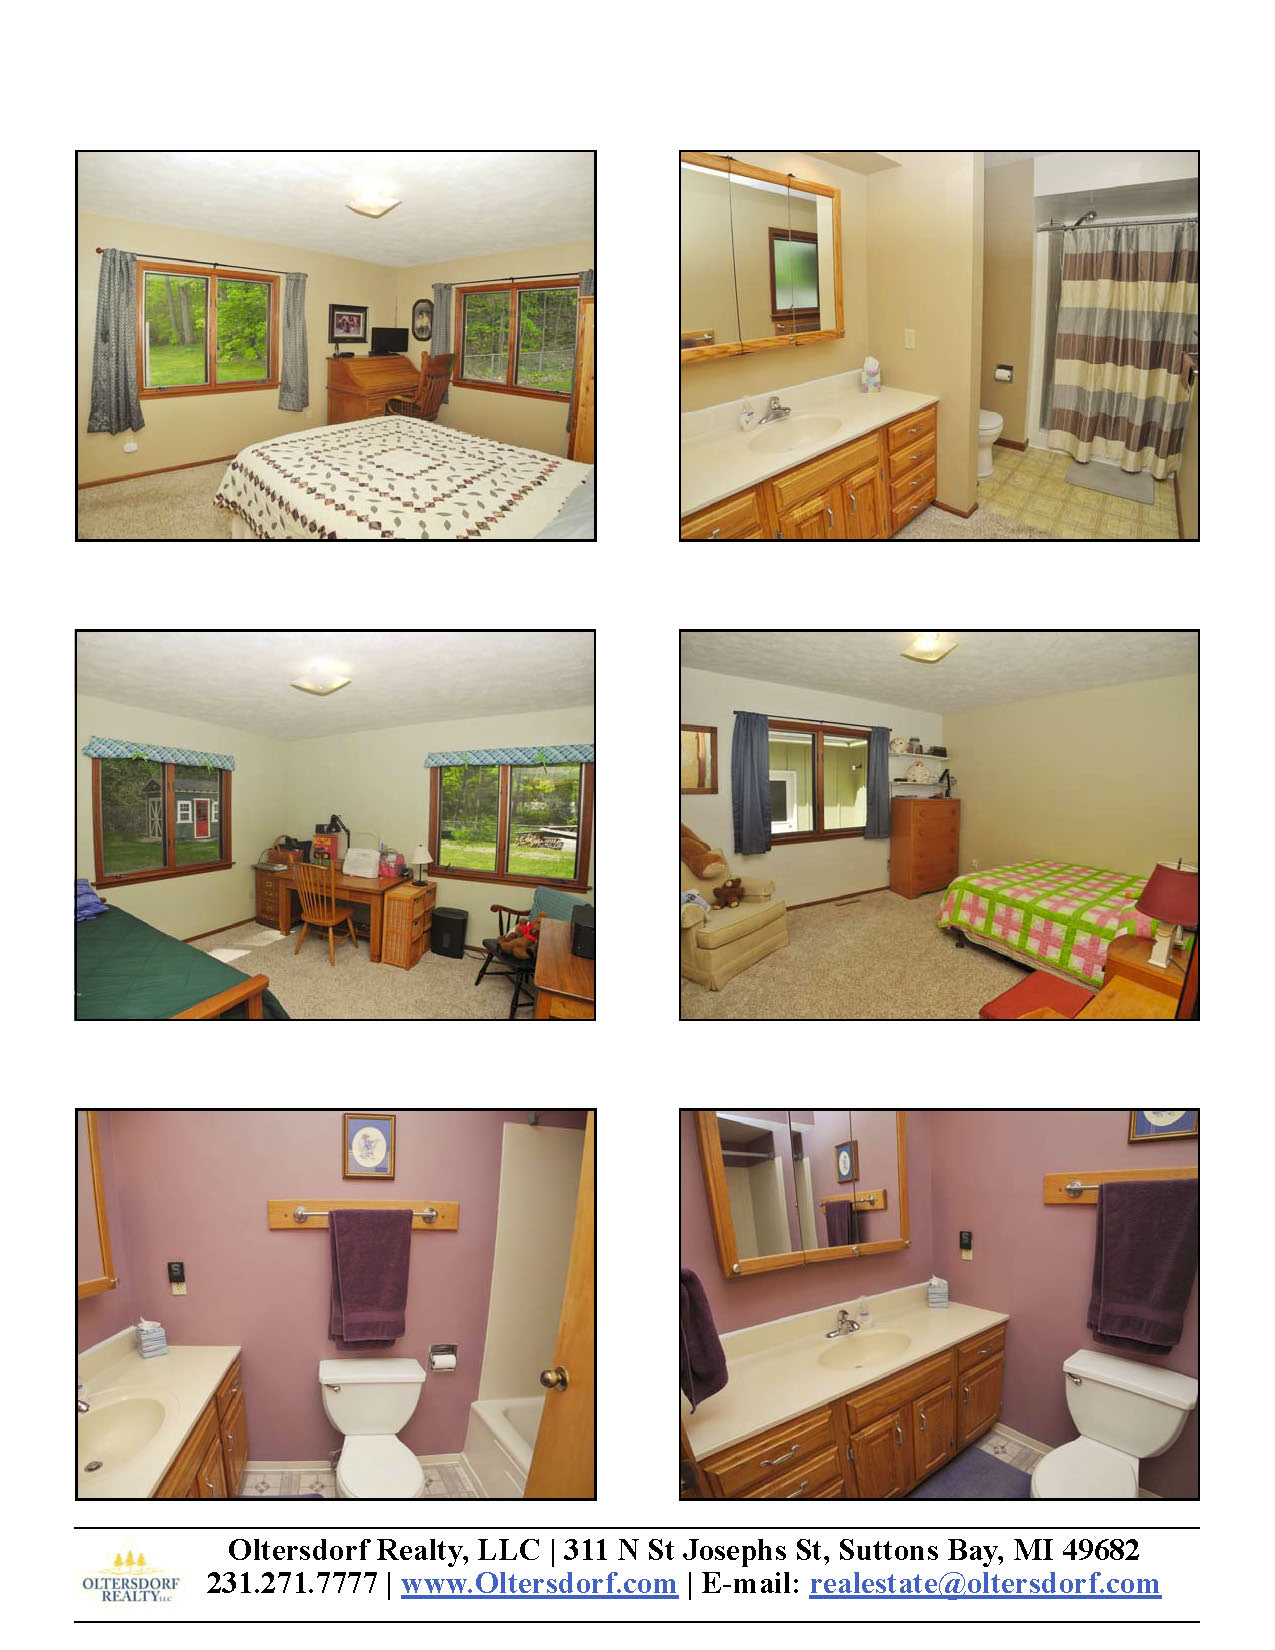 10142 S West Bay Shore Drive, Traverse City, MI - For sale by Oltersdorf Realty LLC - Marketing Packet (6).jpg